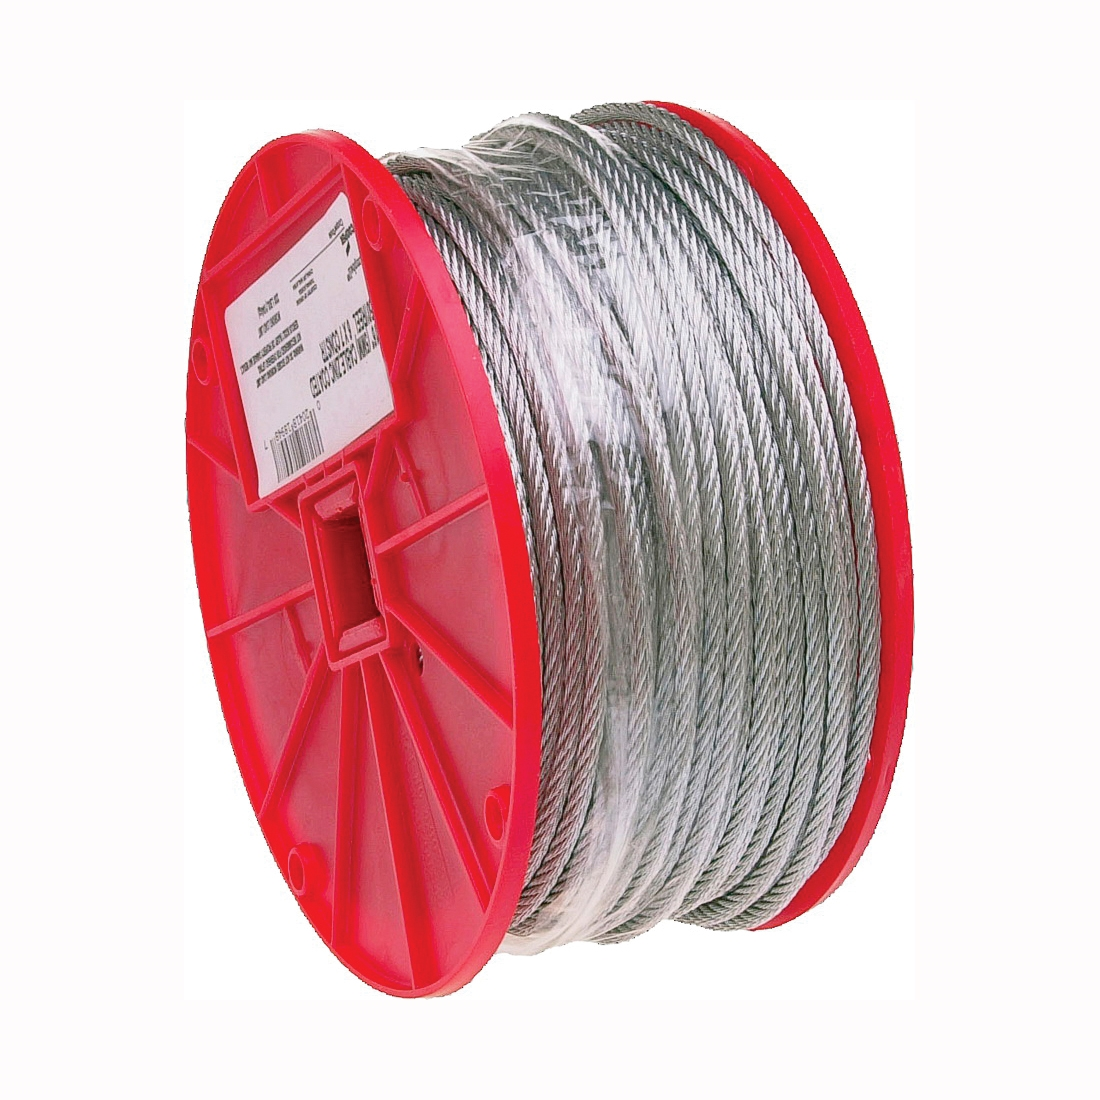 Picture of Campbell 7000627 Aircraft Cable, 3/16 in Dia, 250 ft L, 840 lb Working Load, Galvanized Steel